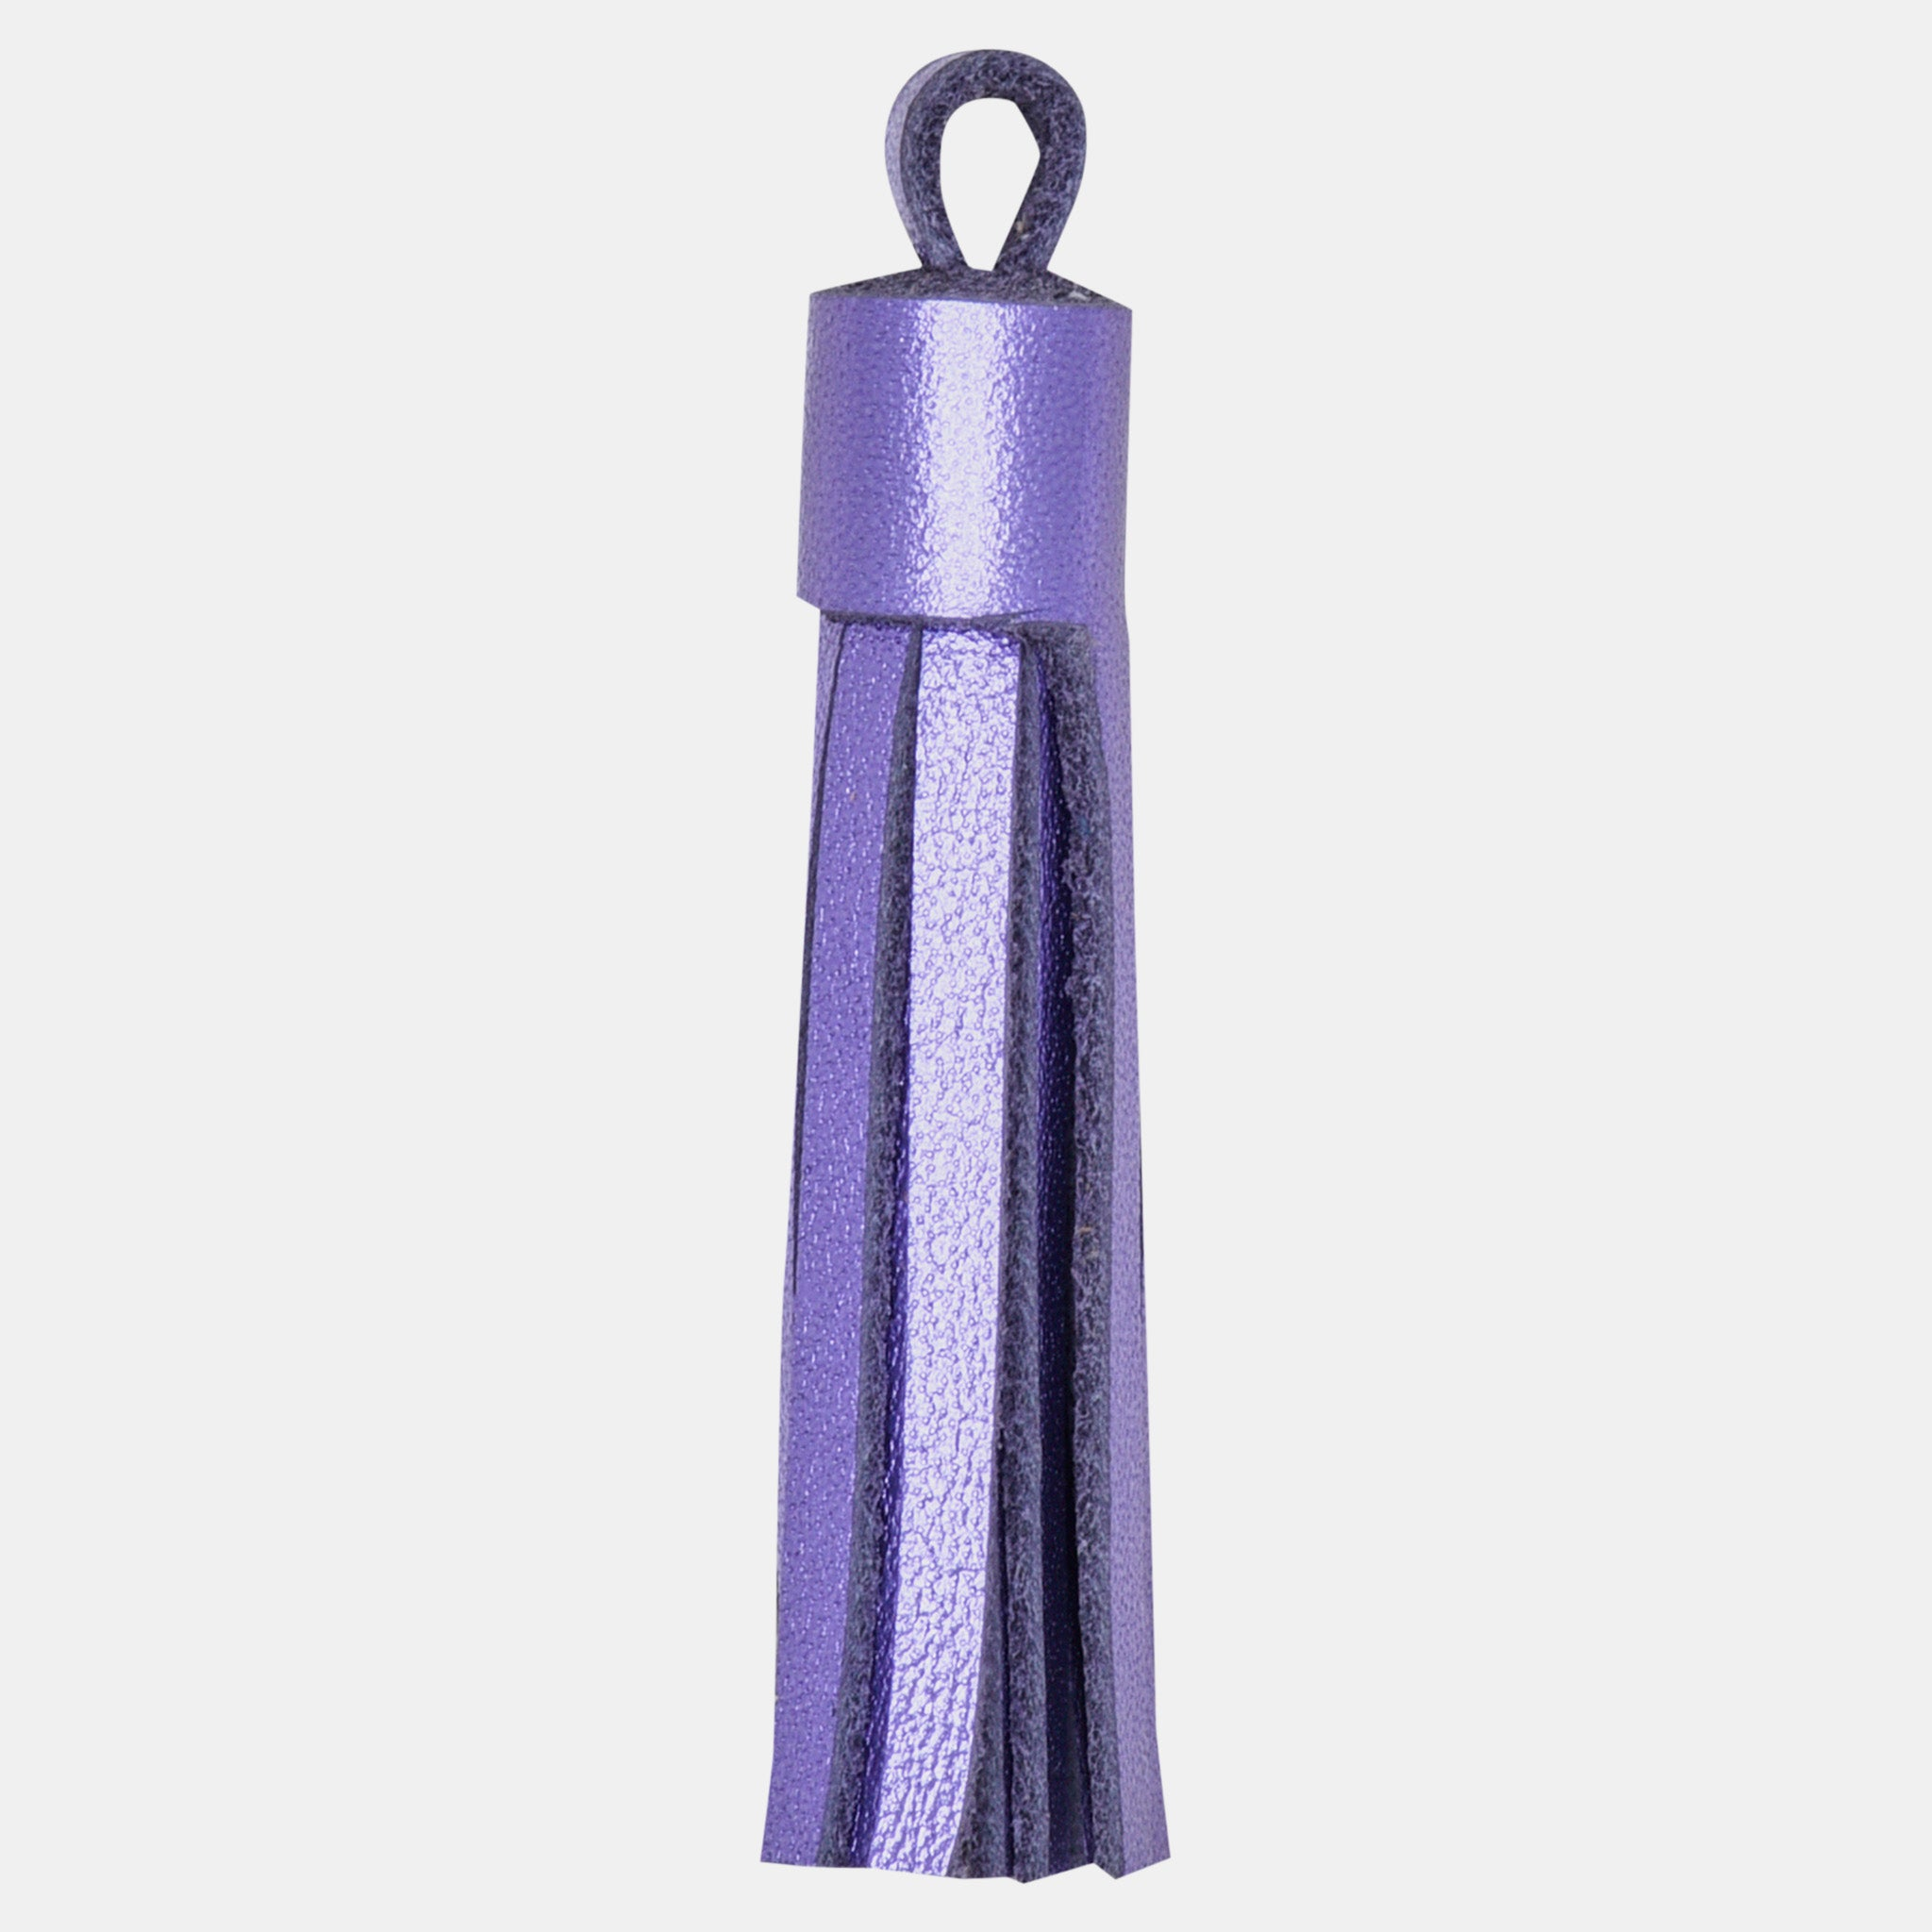 Leather Tassel Set Lilac Metallic (4 per set)